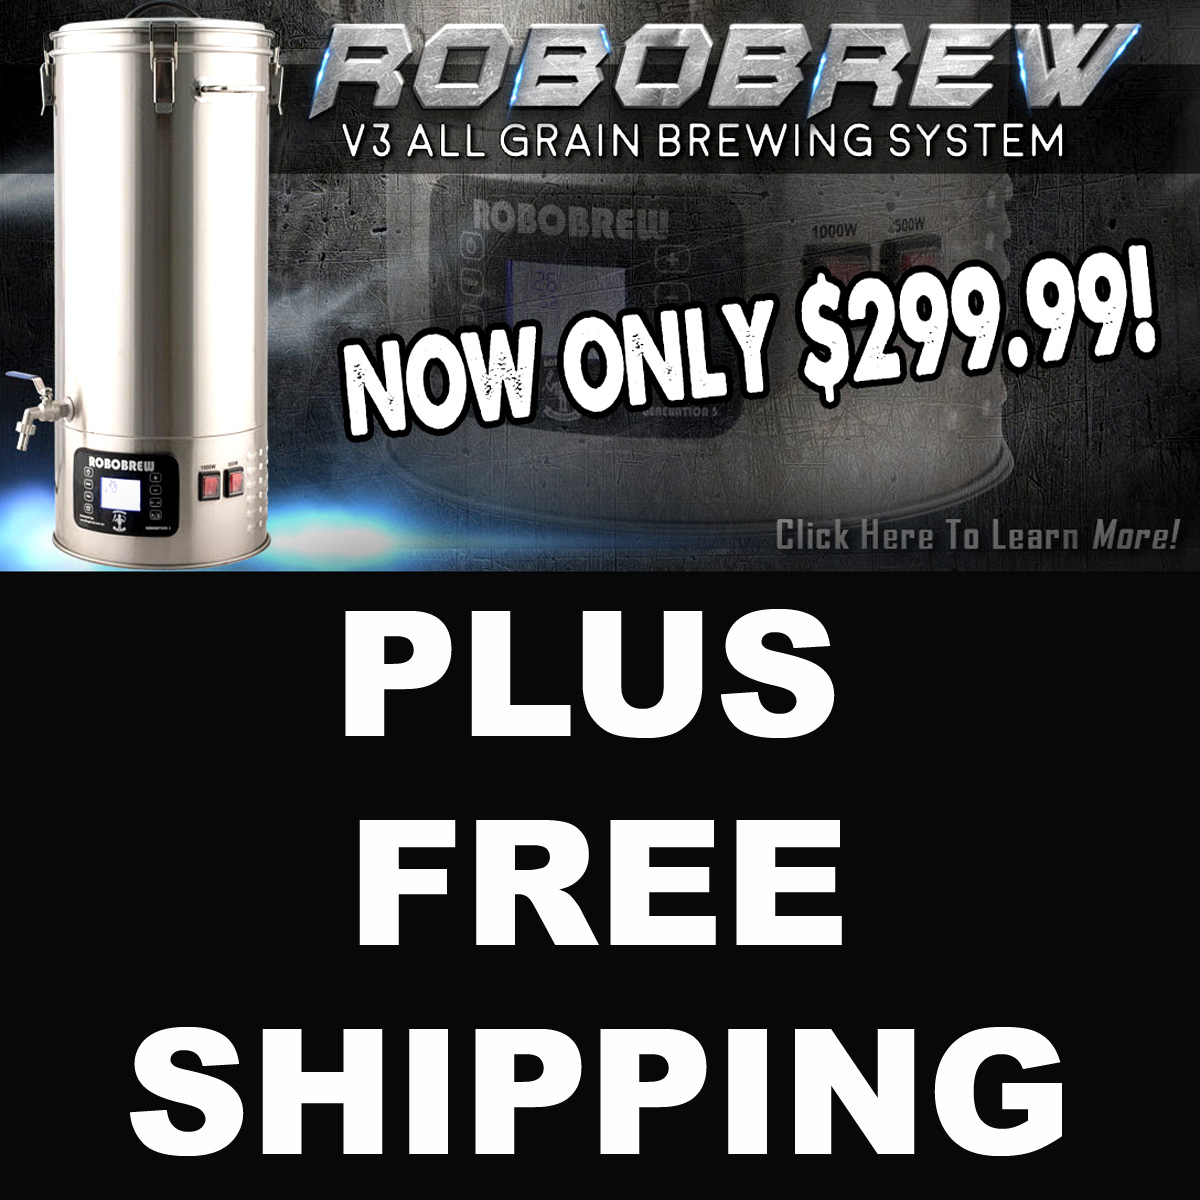 Get a RoboBrew for Just $299 Plus Free Shipping! Coupon Code